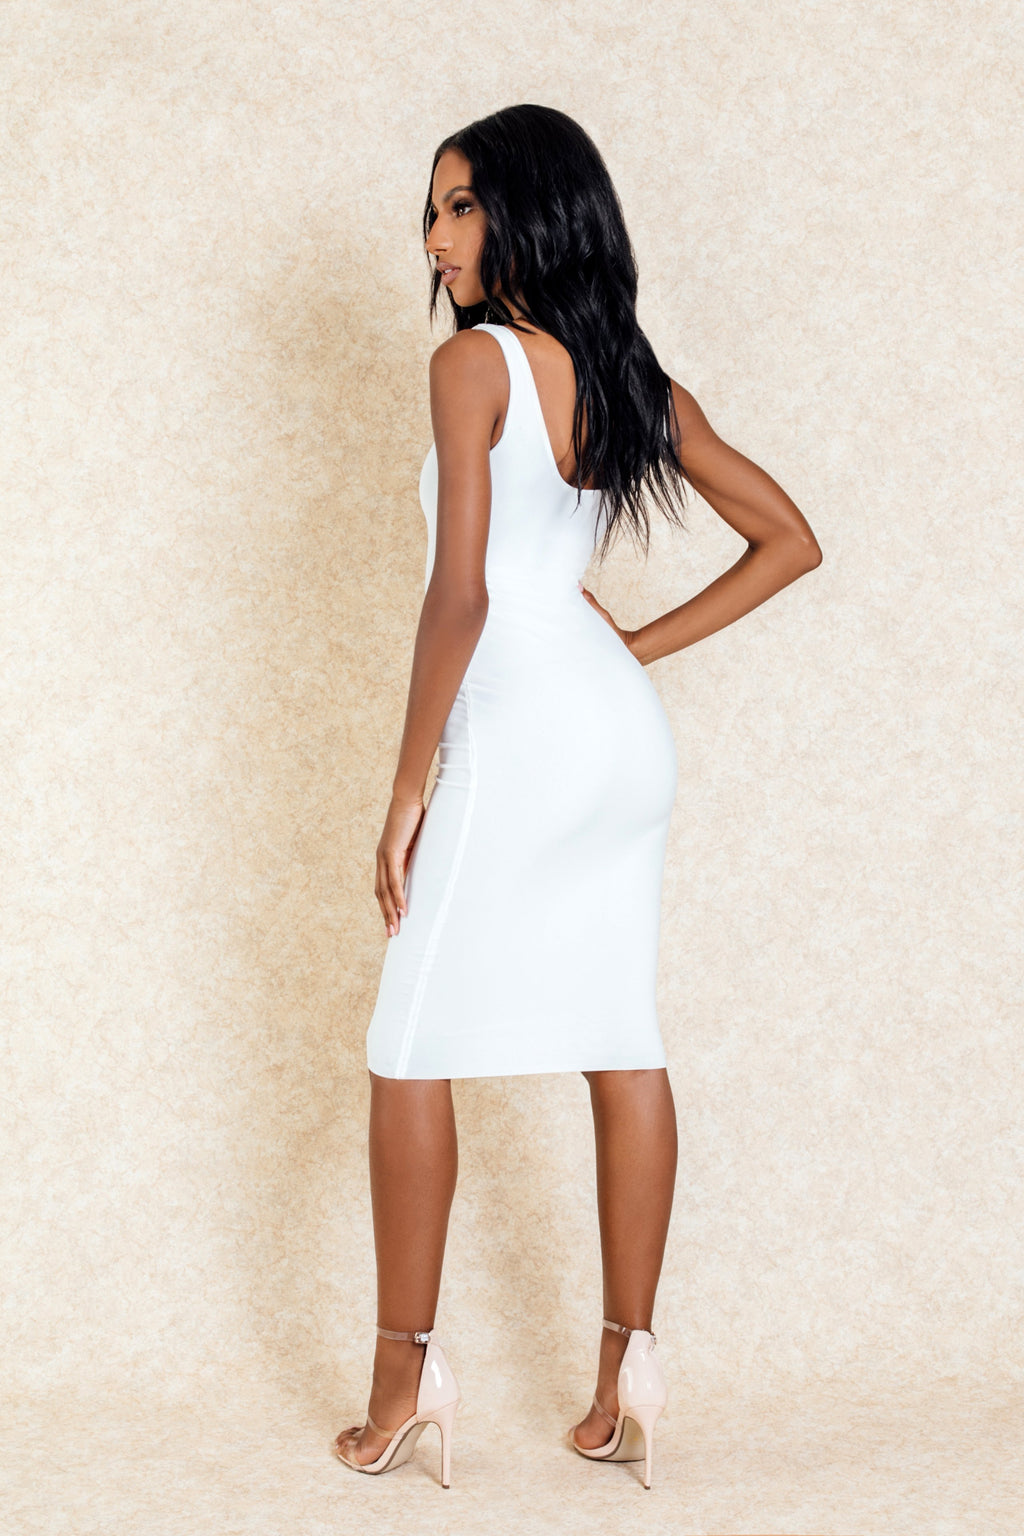 Celeste White Midi Stretch Bodycon Dress-Dresses-Klasha